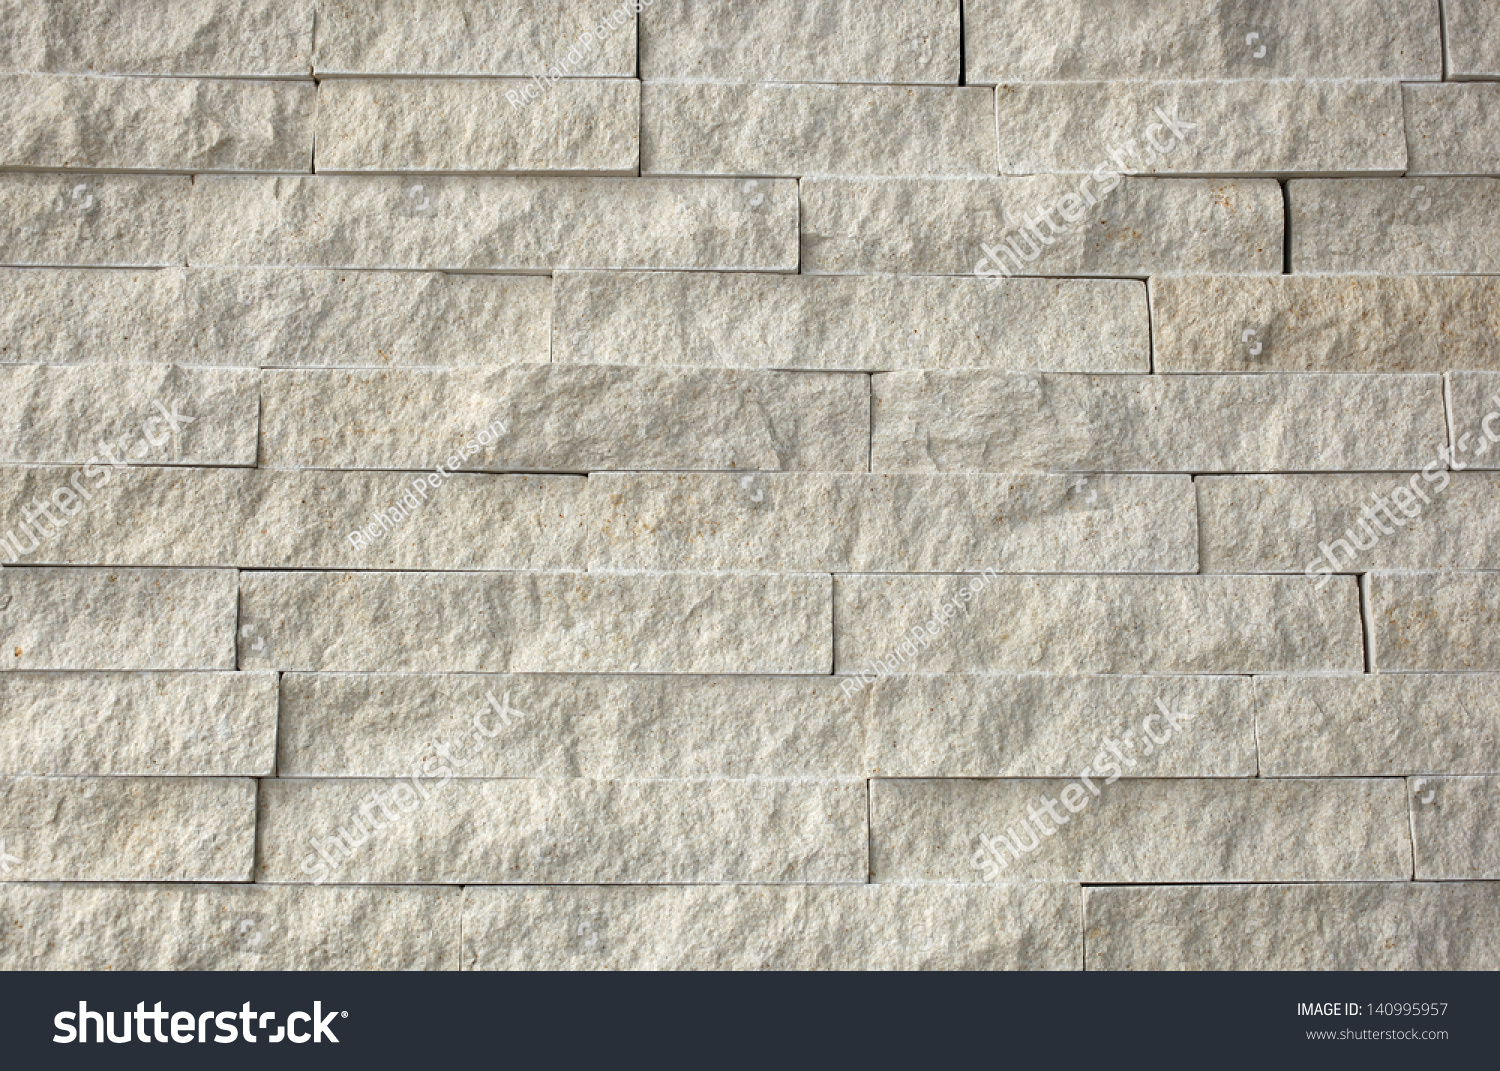 Natural Stone Granite Pieces Tiles Walls Stock Photo 140995957 ...